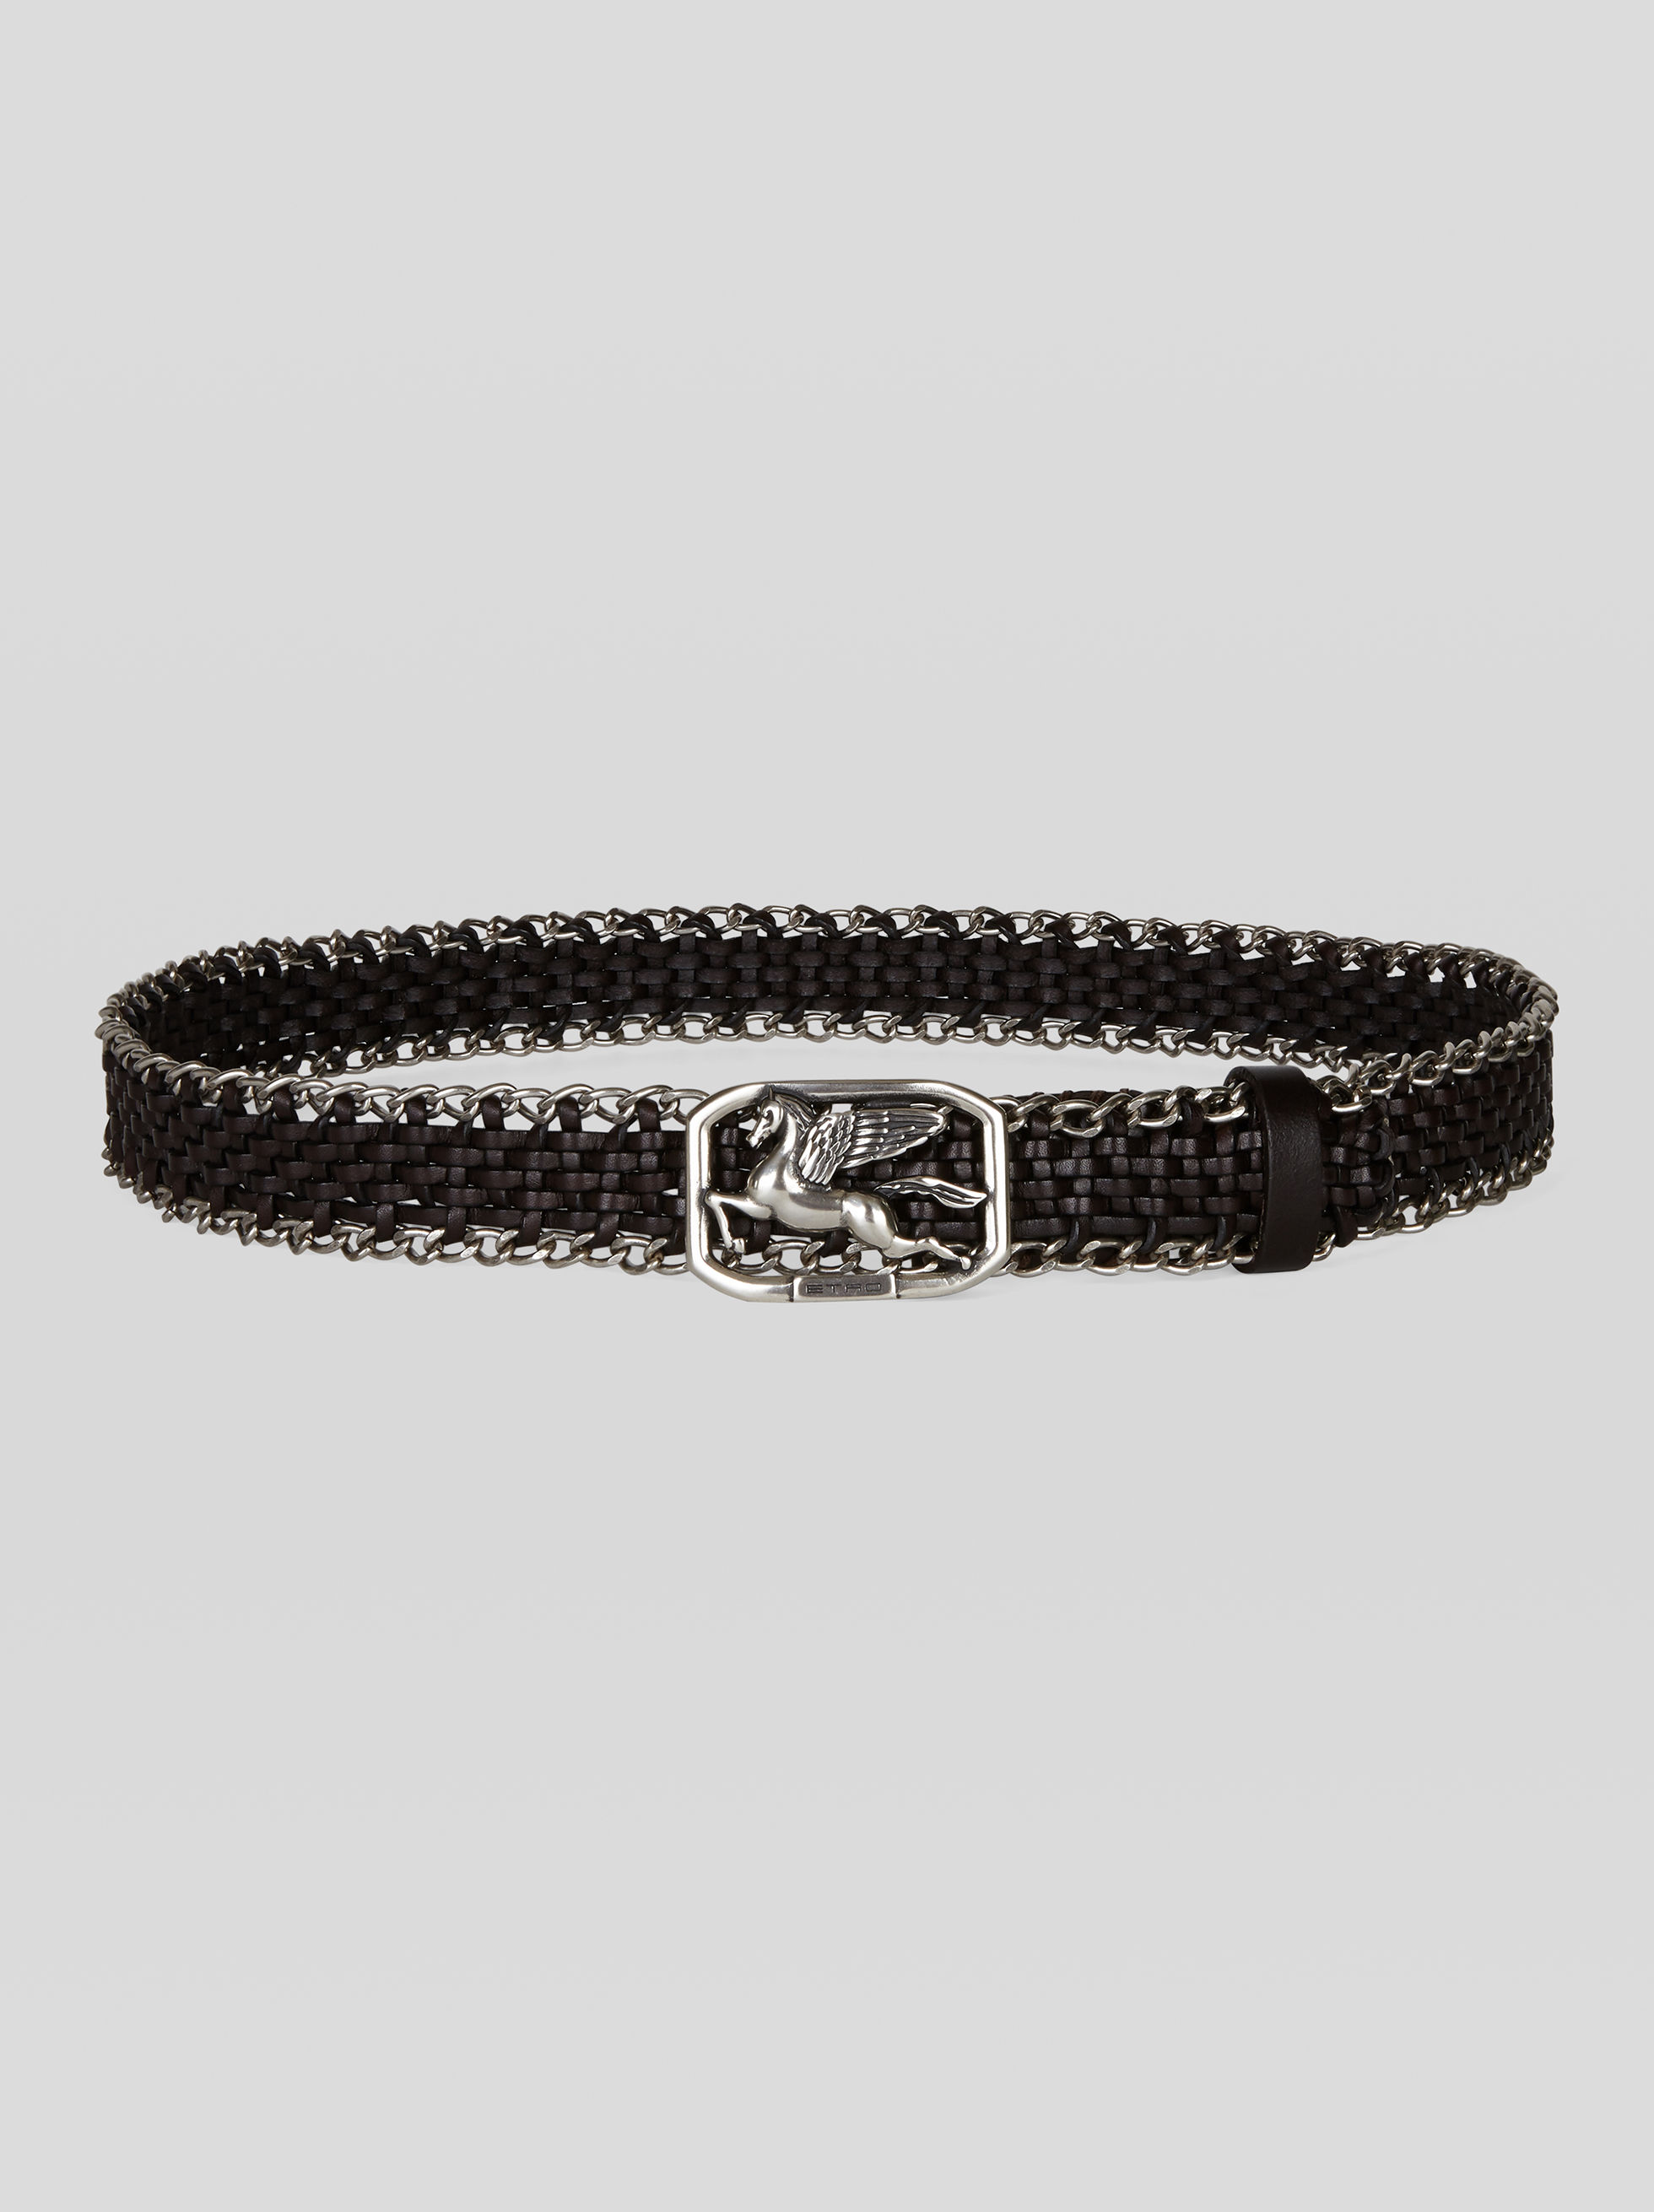 WOVEN LEATHER BELT WITH CHAINS